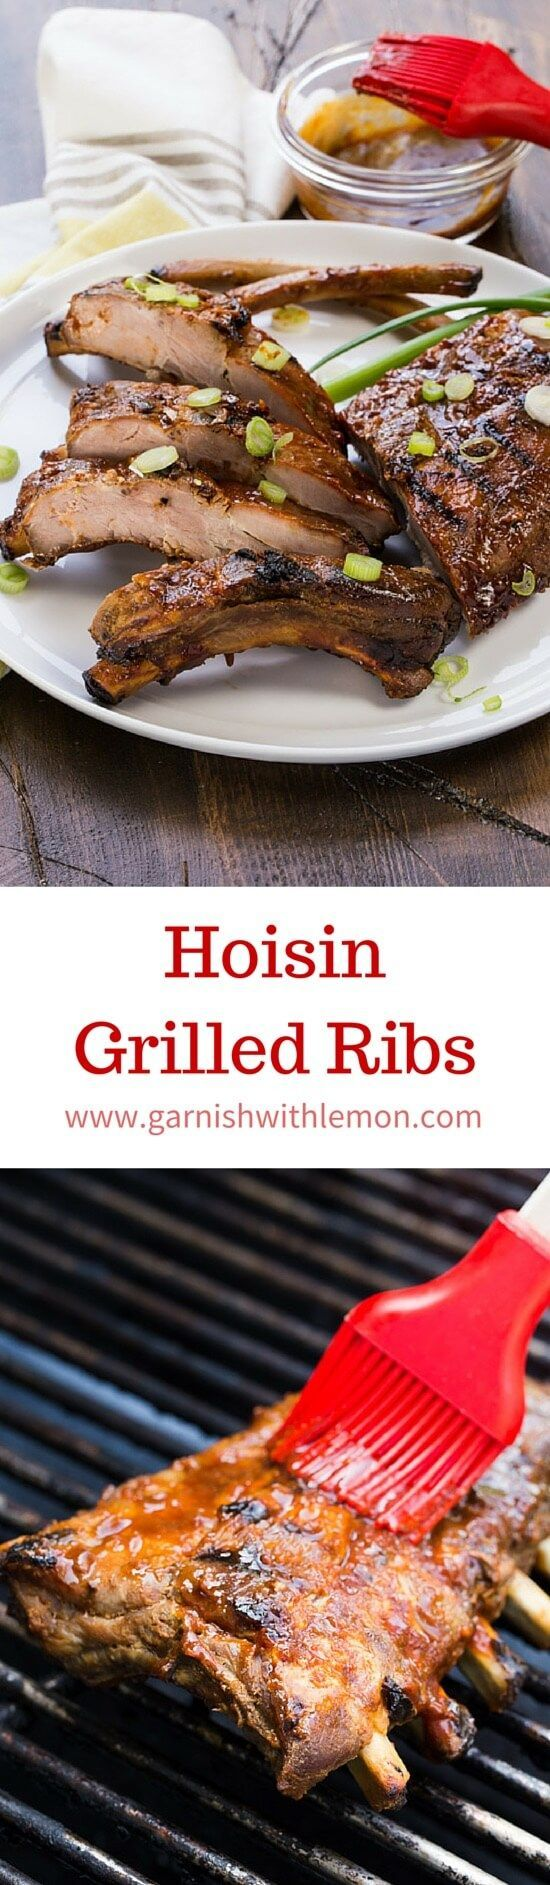 ... on Pinterest | Braised short ribs, Grilled baby back ribs and Barbecue